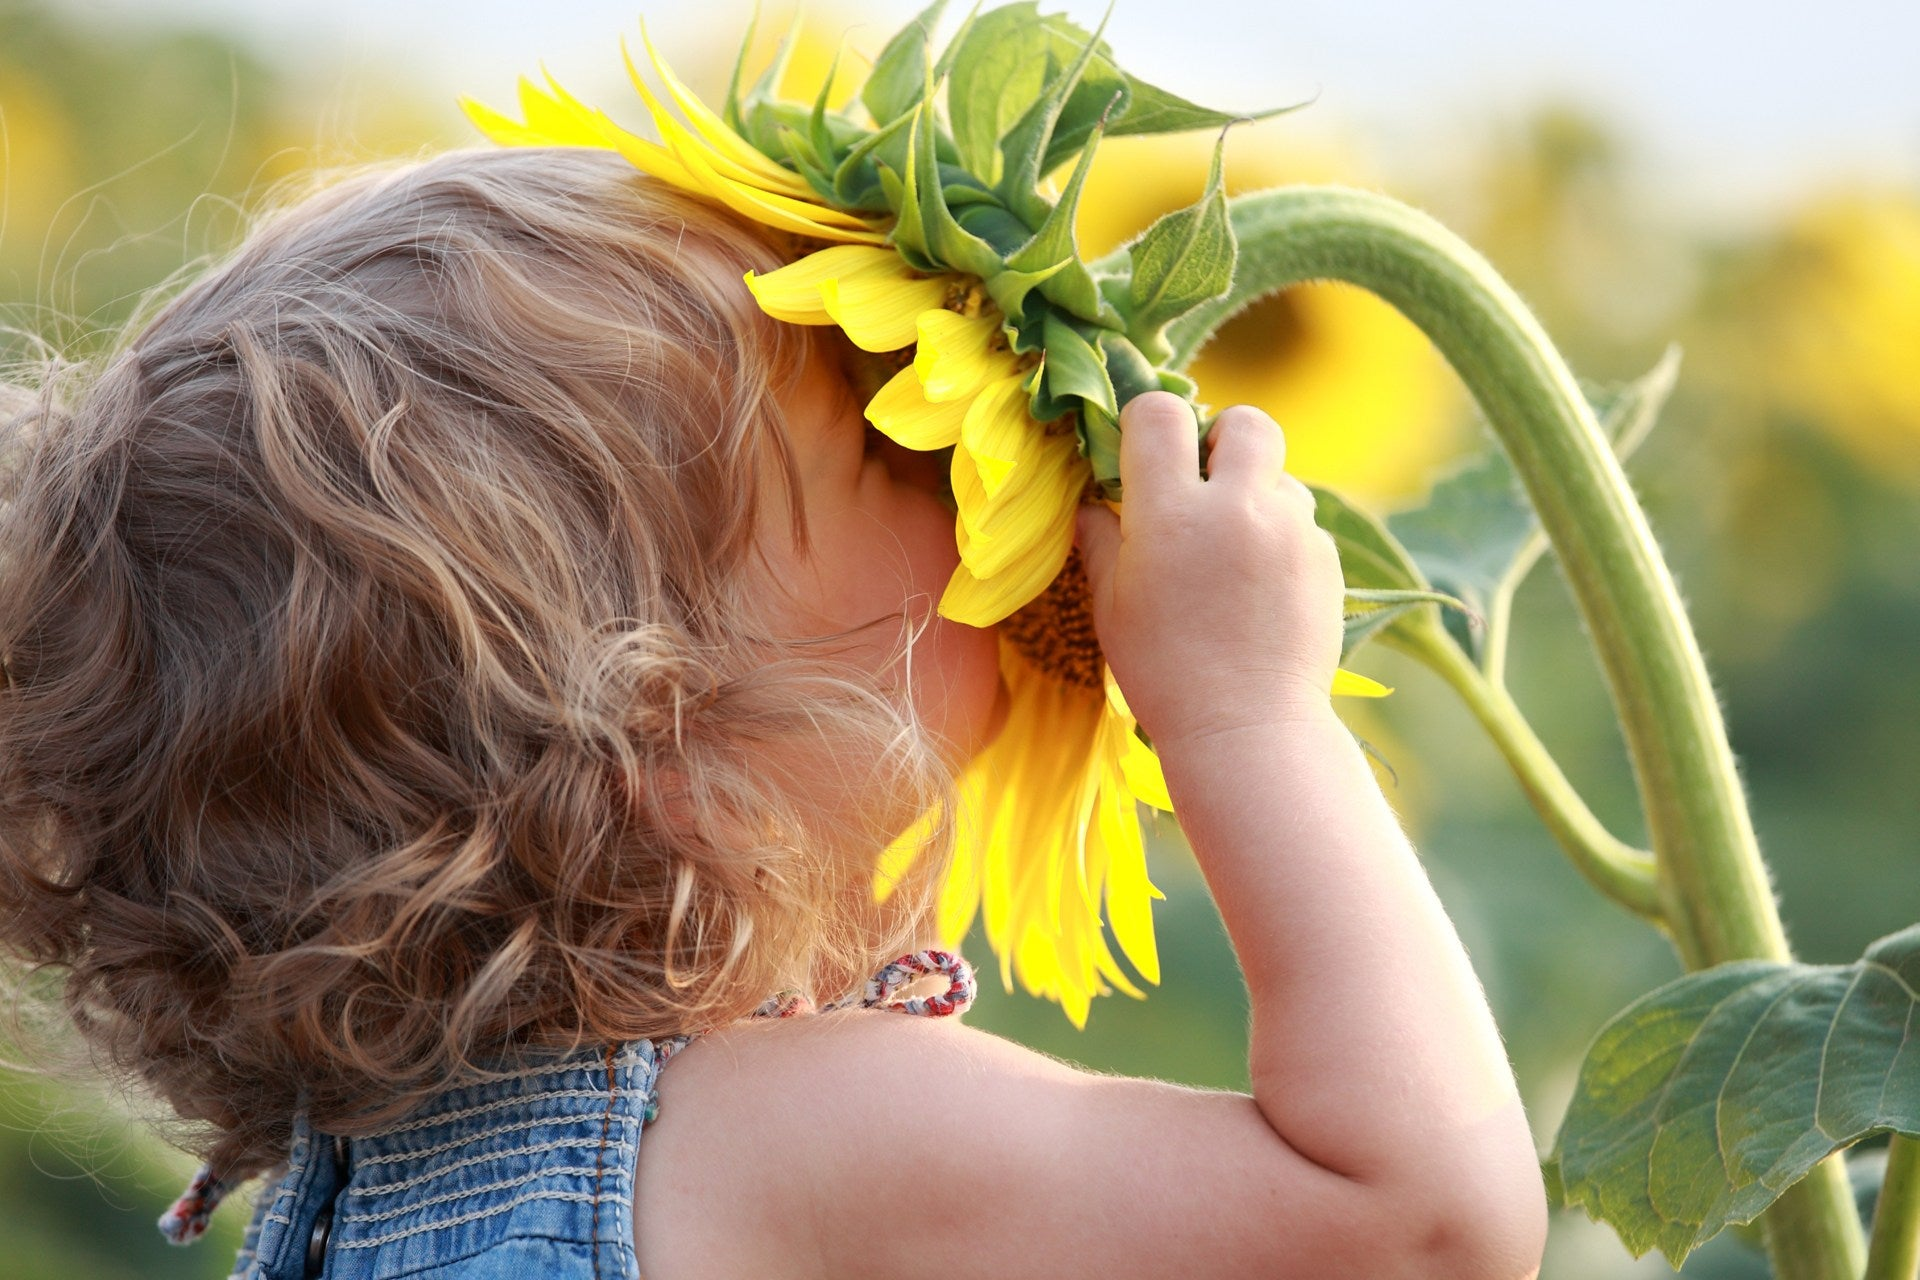 Autistic Child with Olfactory Dysfunction Smelling a Daisy Flower